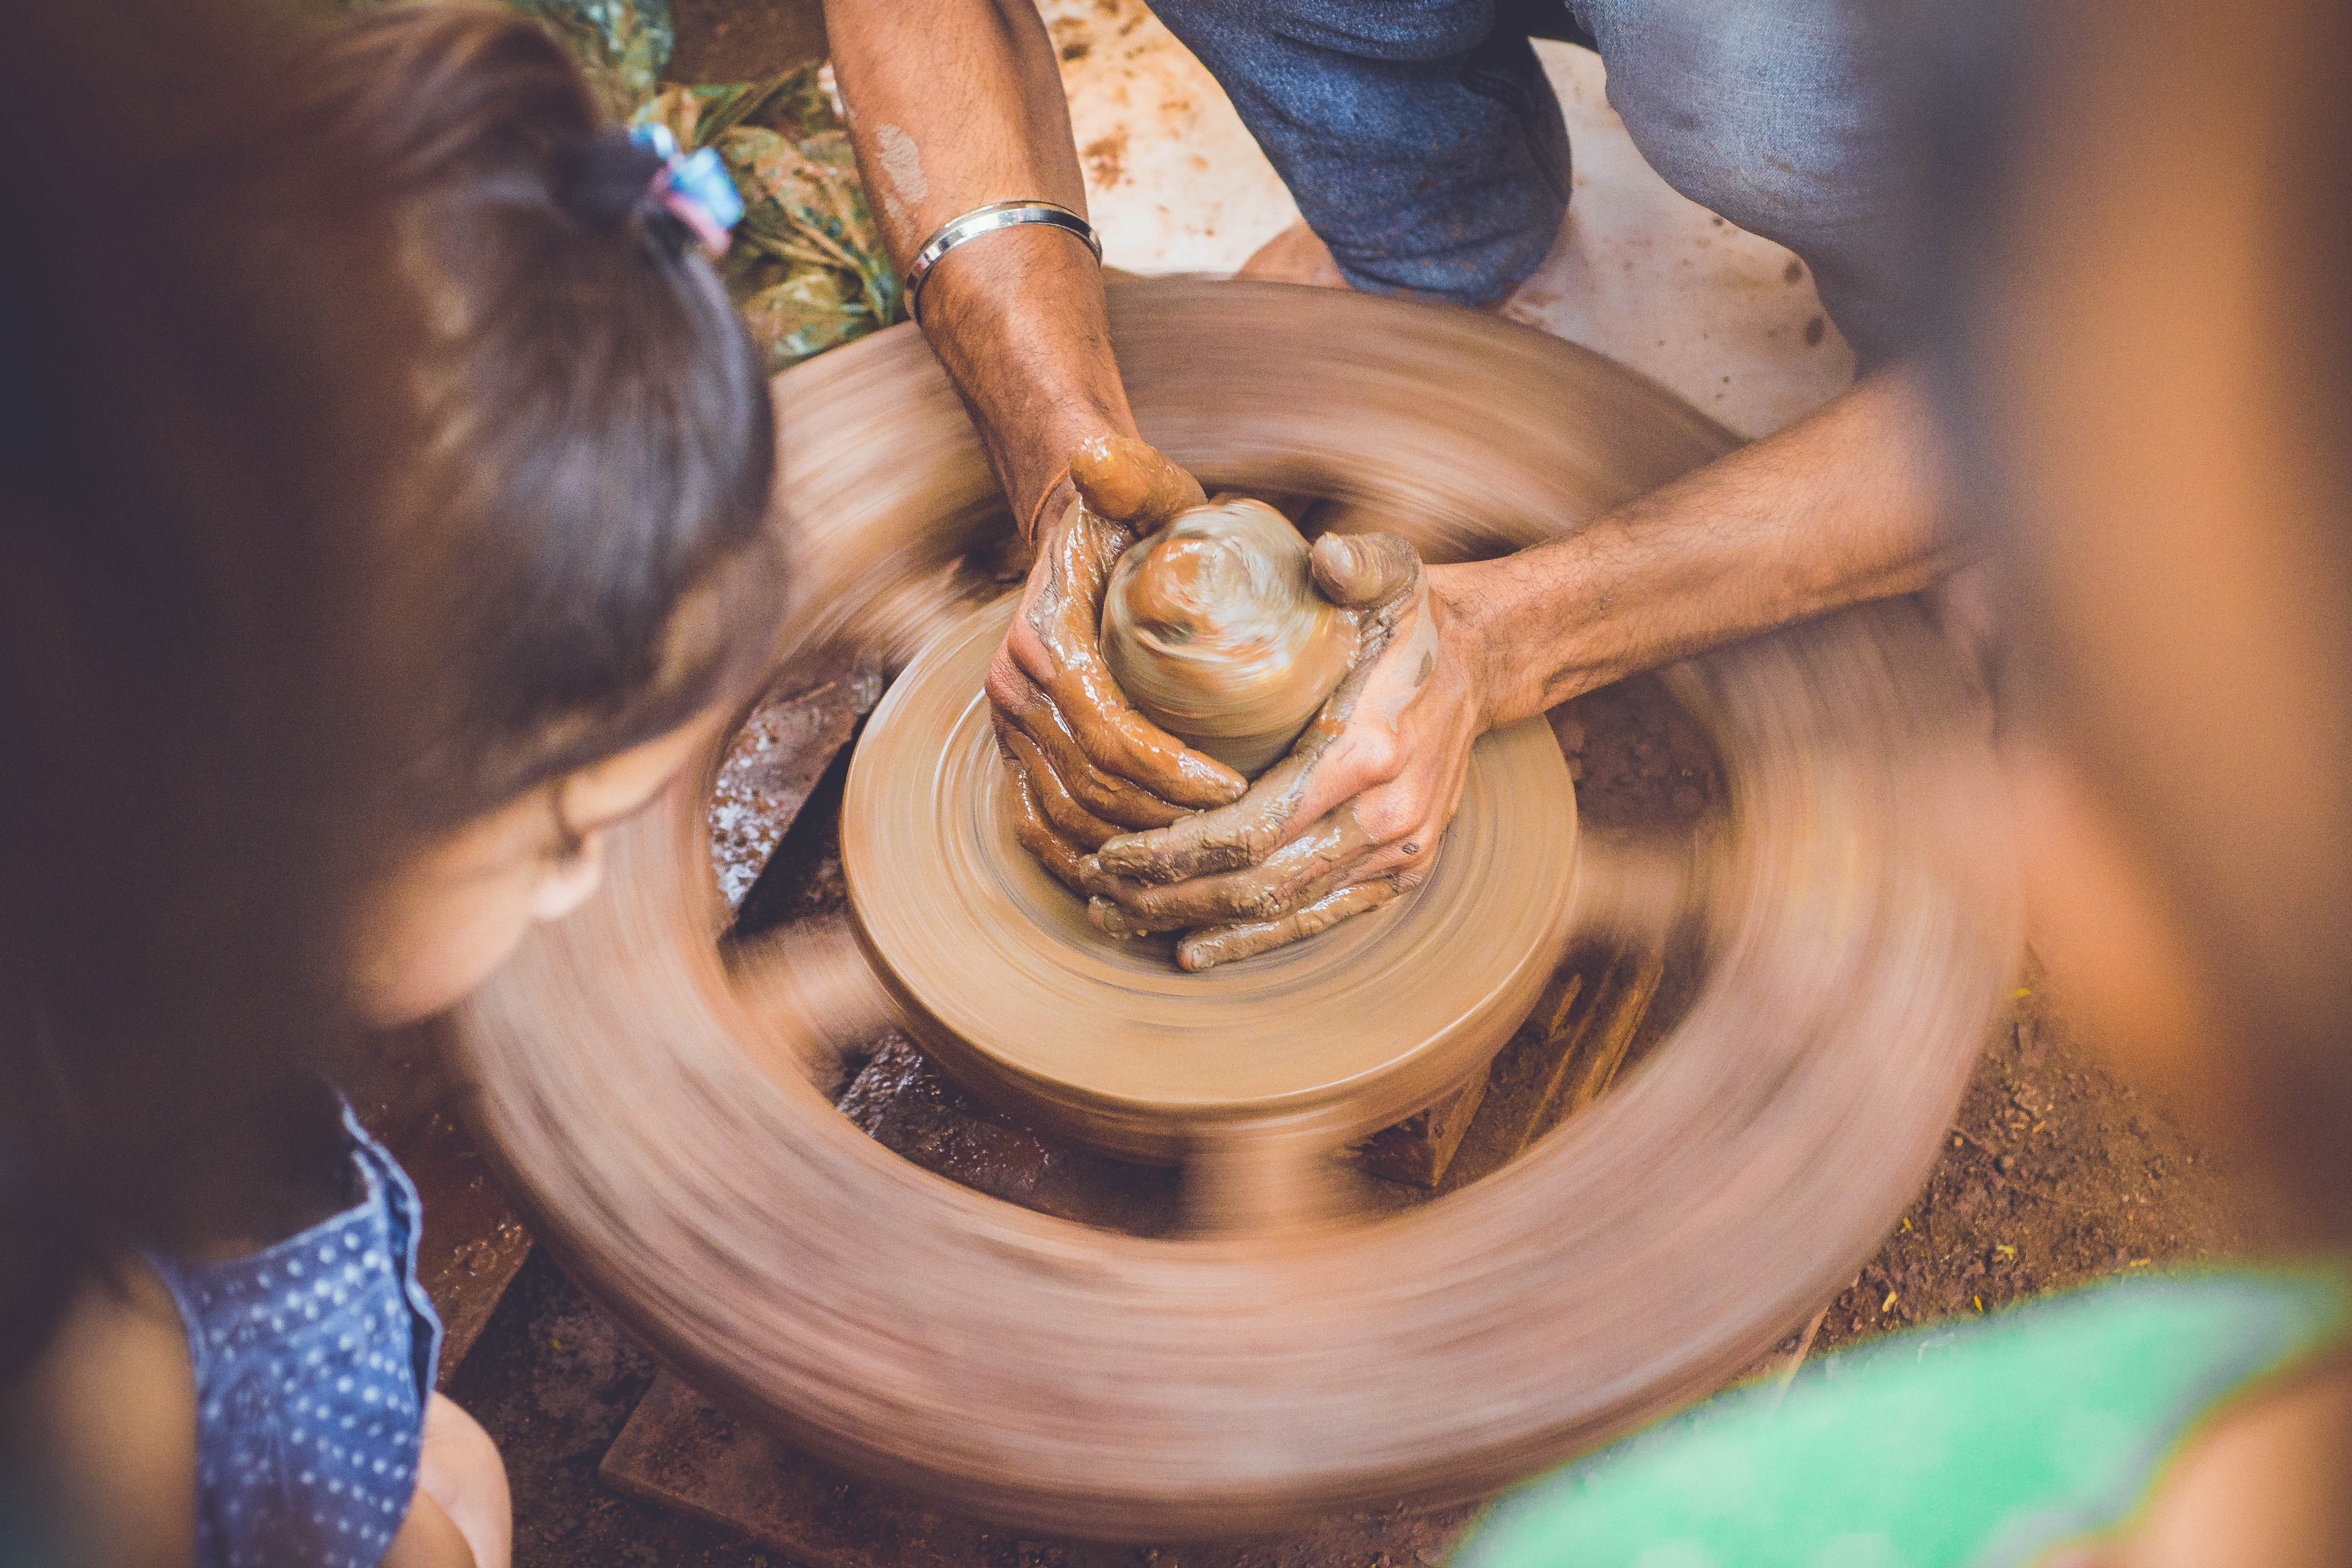 Person Making Clay Pot in Front of Girl during Daytime, Art, Brown, Clay, Craftsmanship, HQ Photo